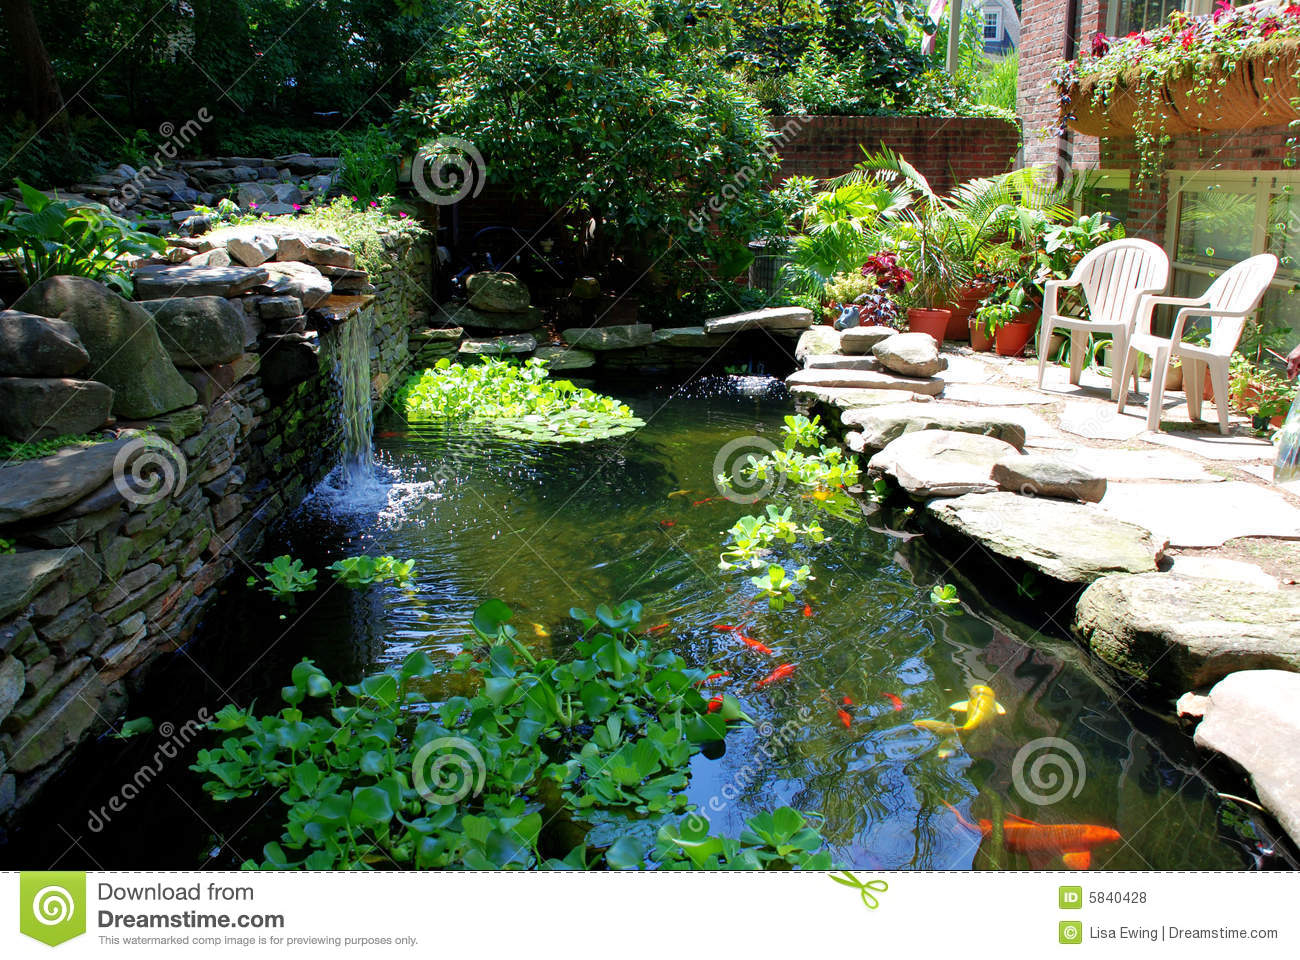 Goldfish And Koi Pond Picture Royalty Free Stock Photos Image 5840428